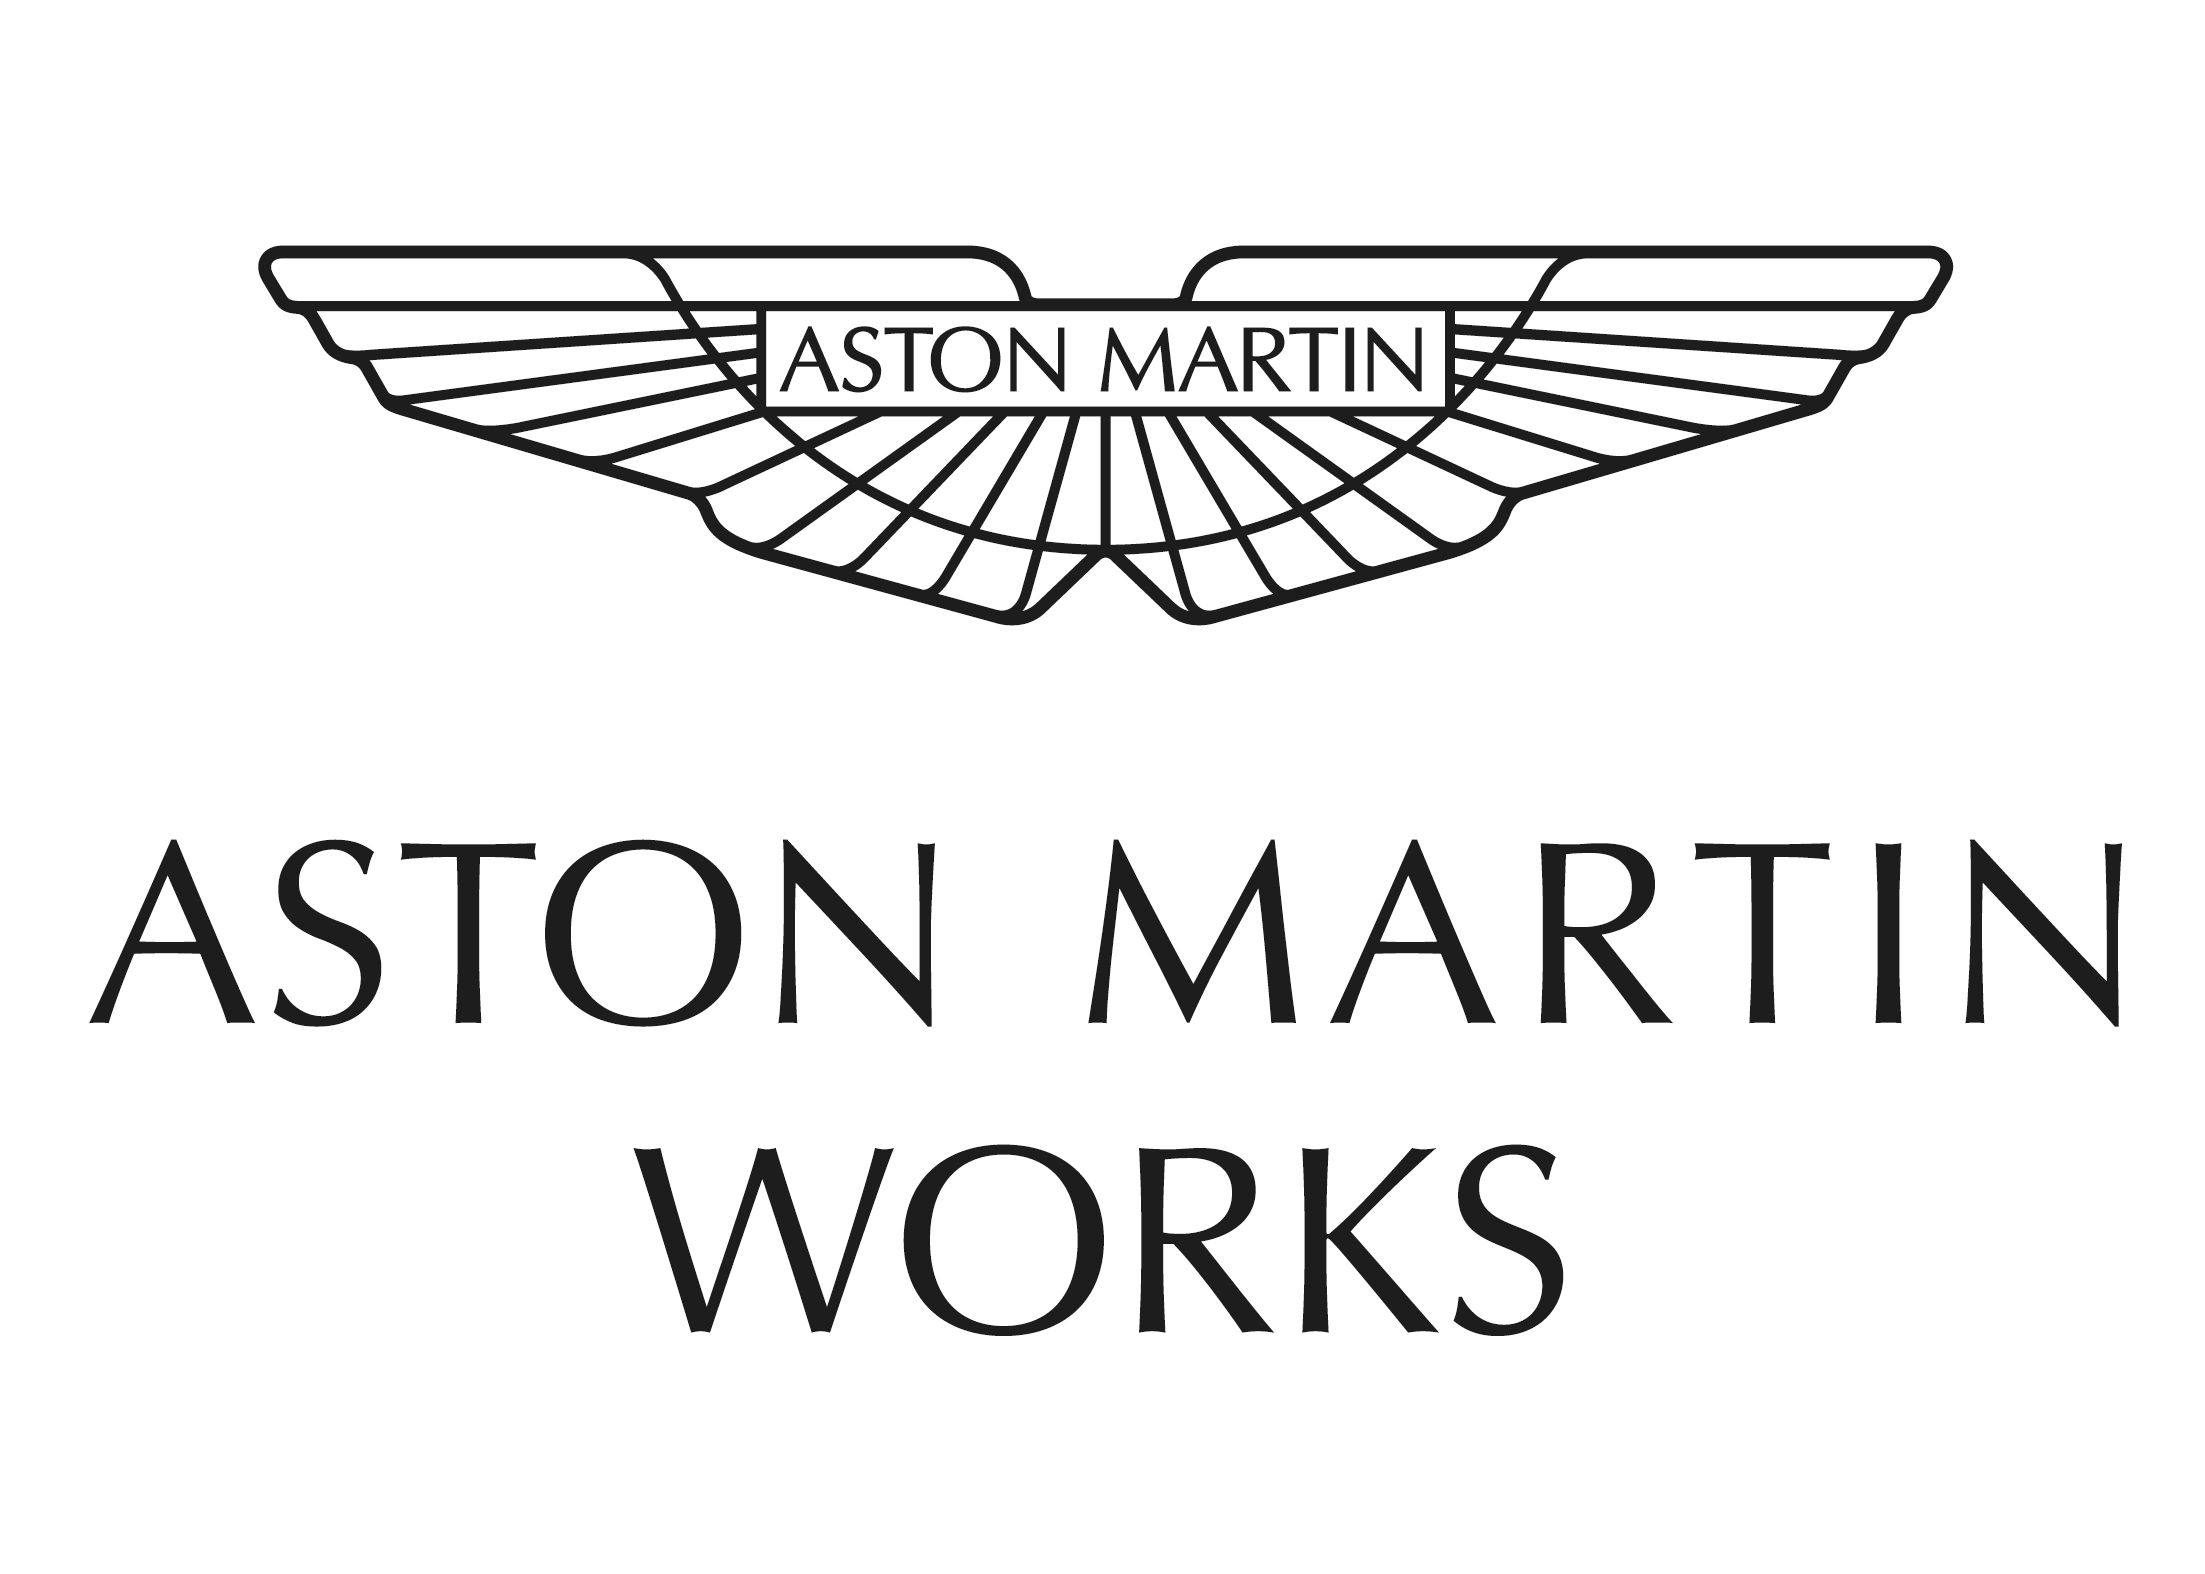 Used Aston Martin Volante cars for sale with PistonHeads